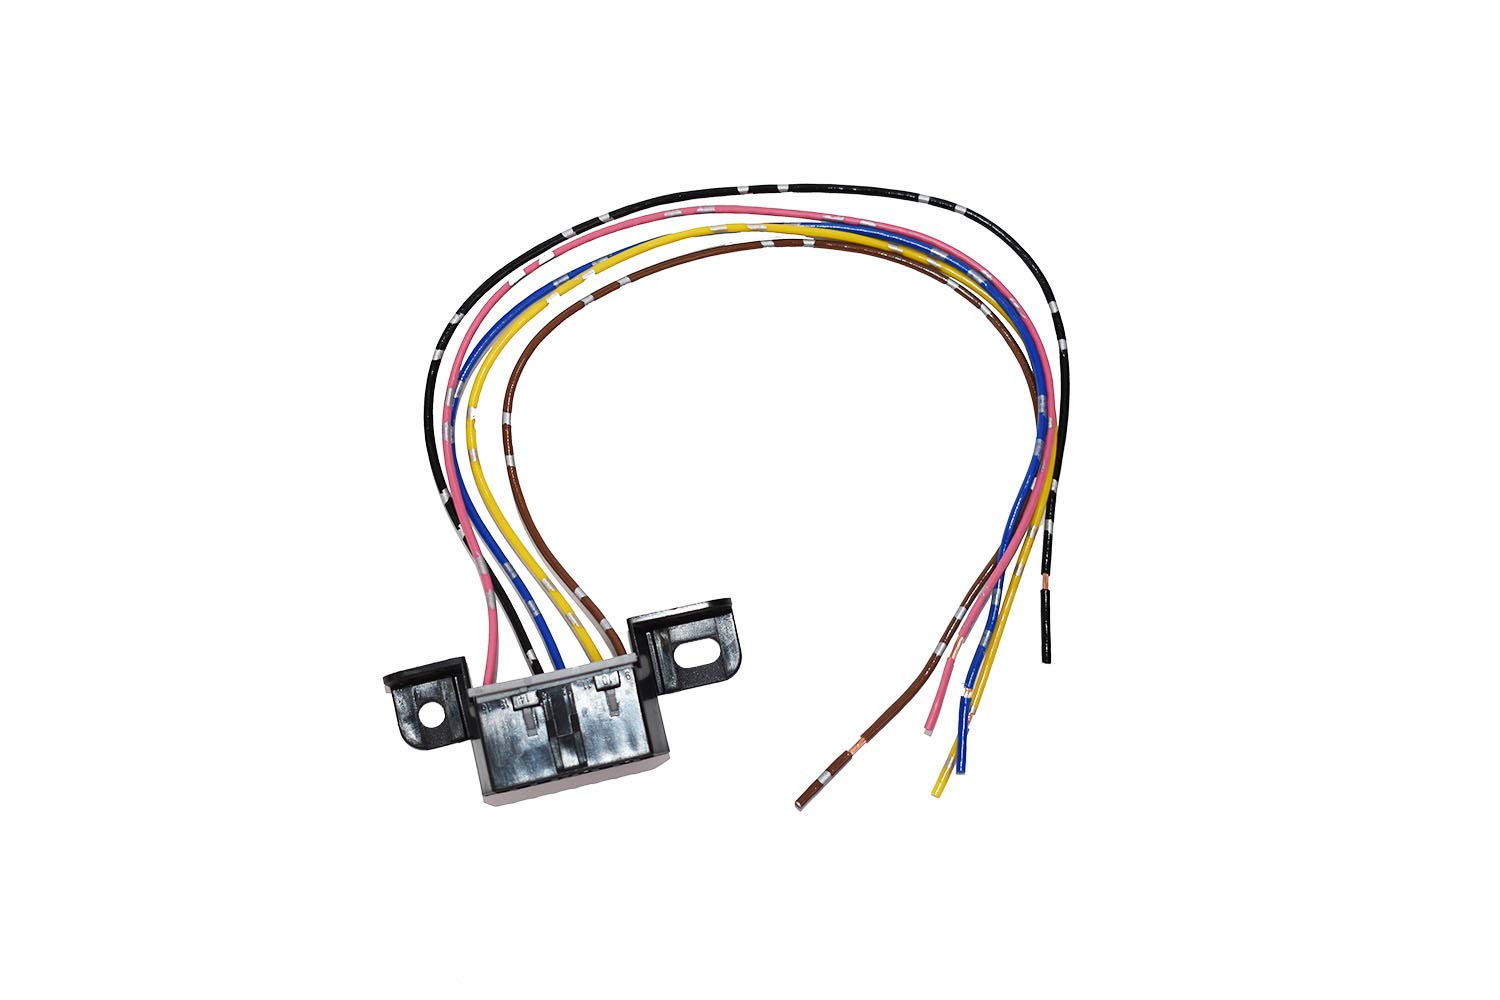 Obd2 Wiring Harness - wiring diagram on the net on